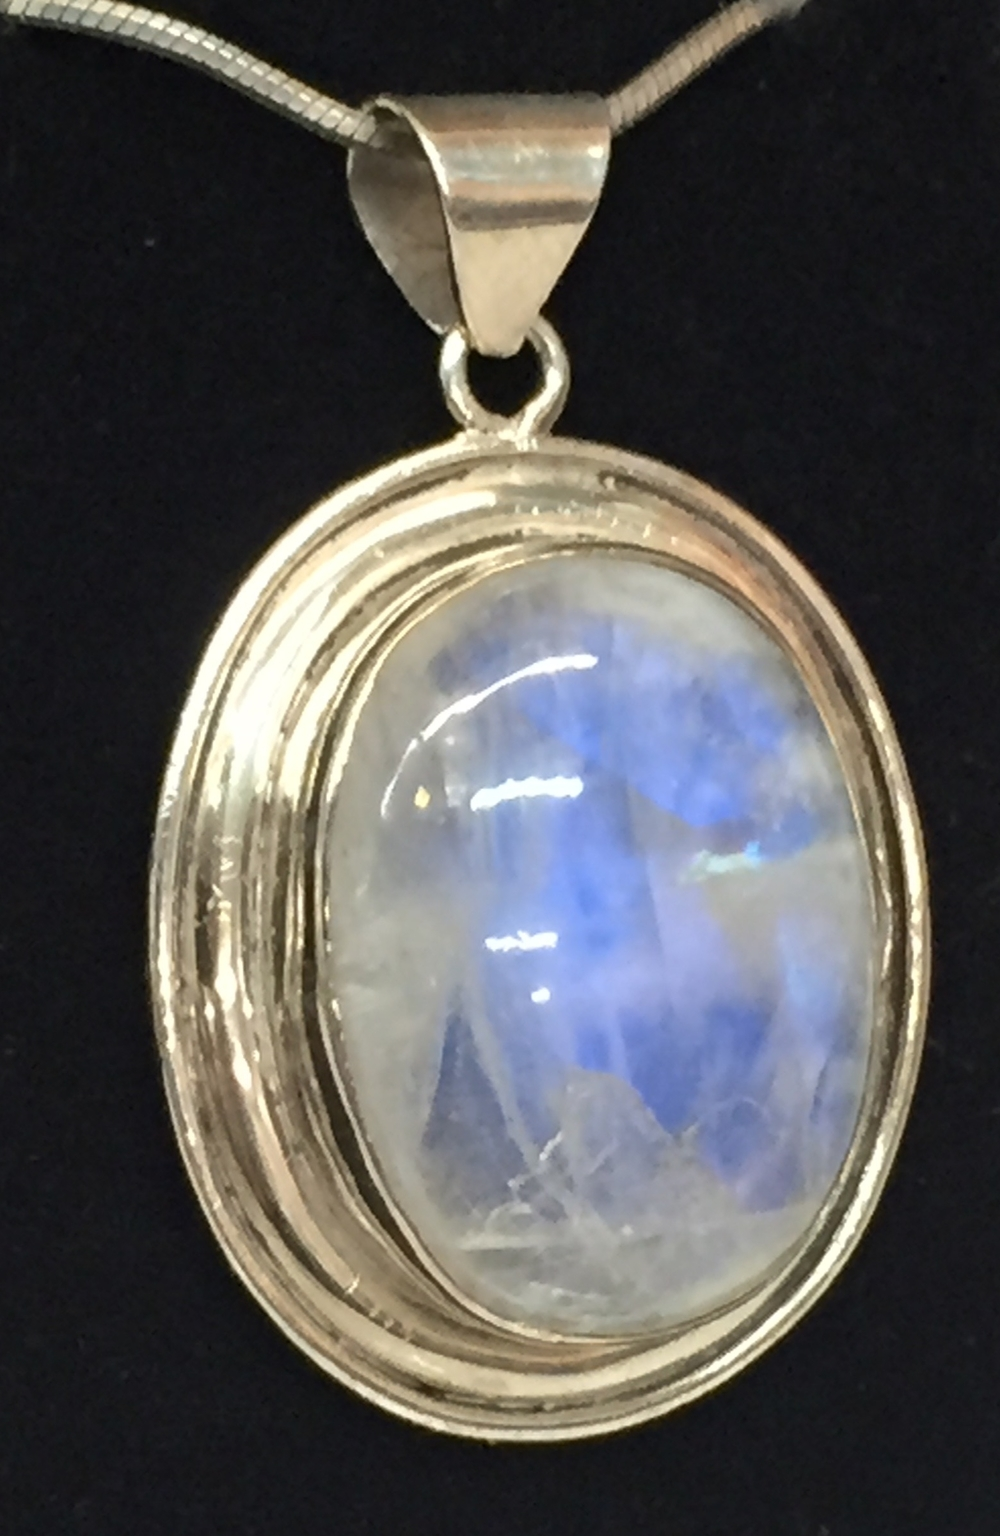 One of our Moonstone pendants in Sterling Silver